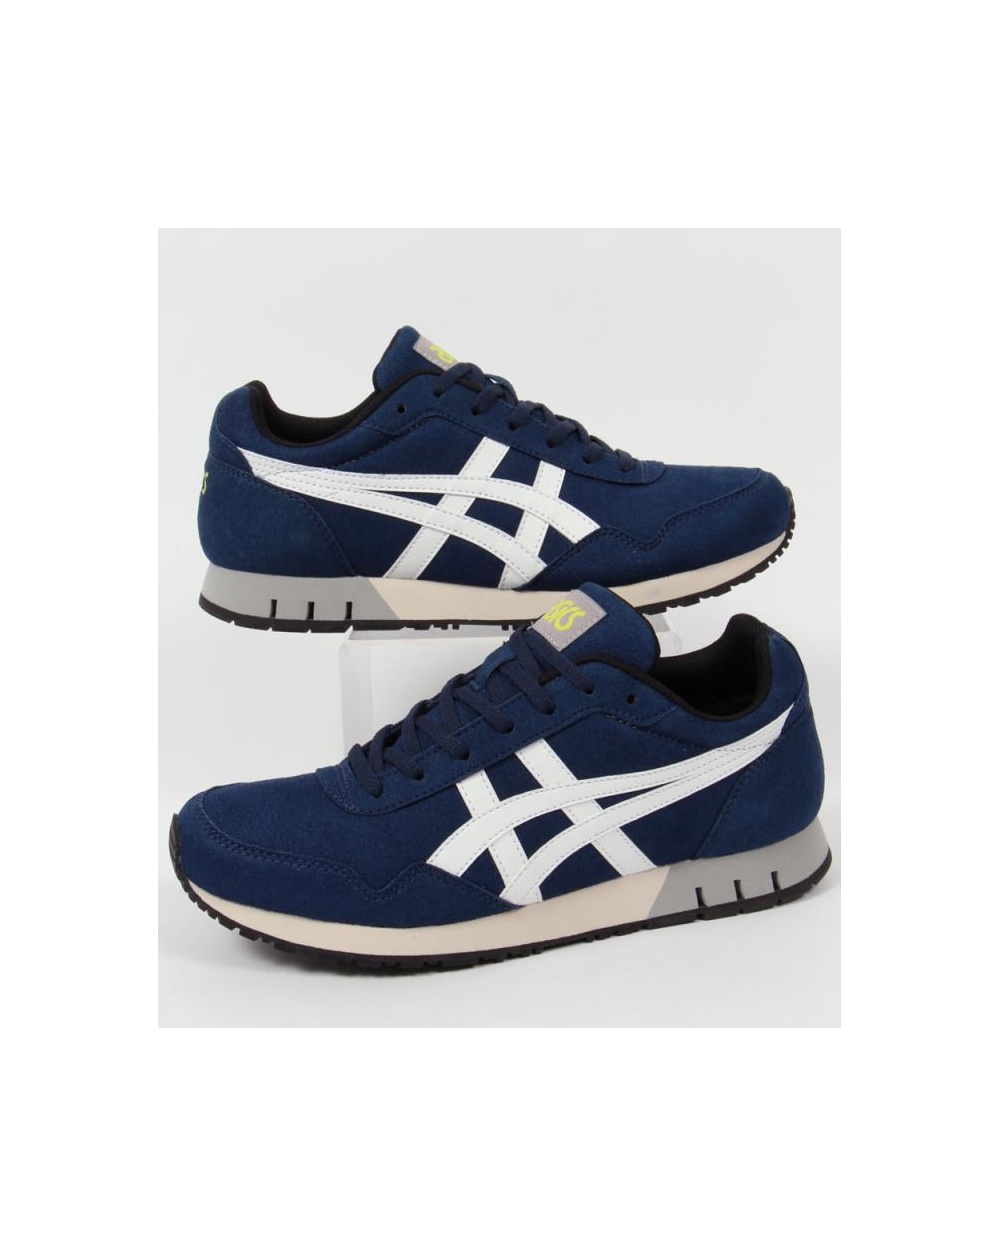 ASICS CURREO MID BLUE LIGHT GREY hJEFe5